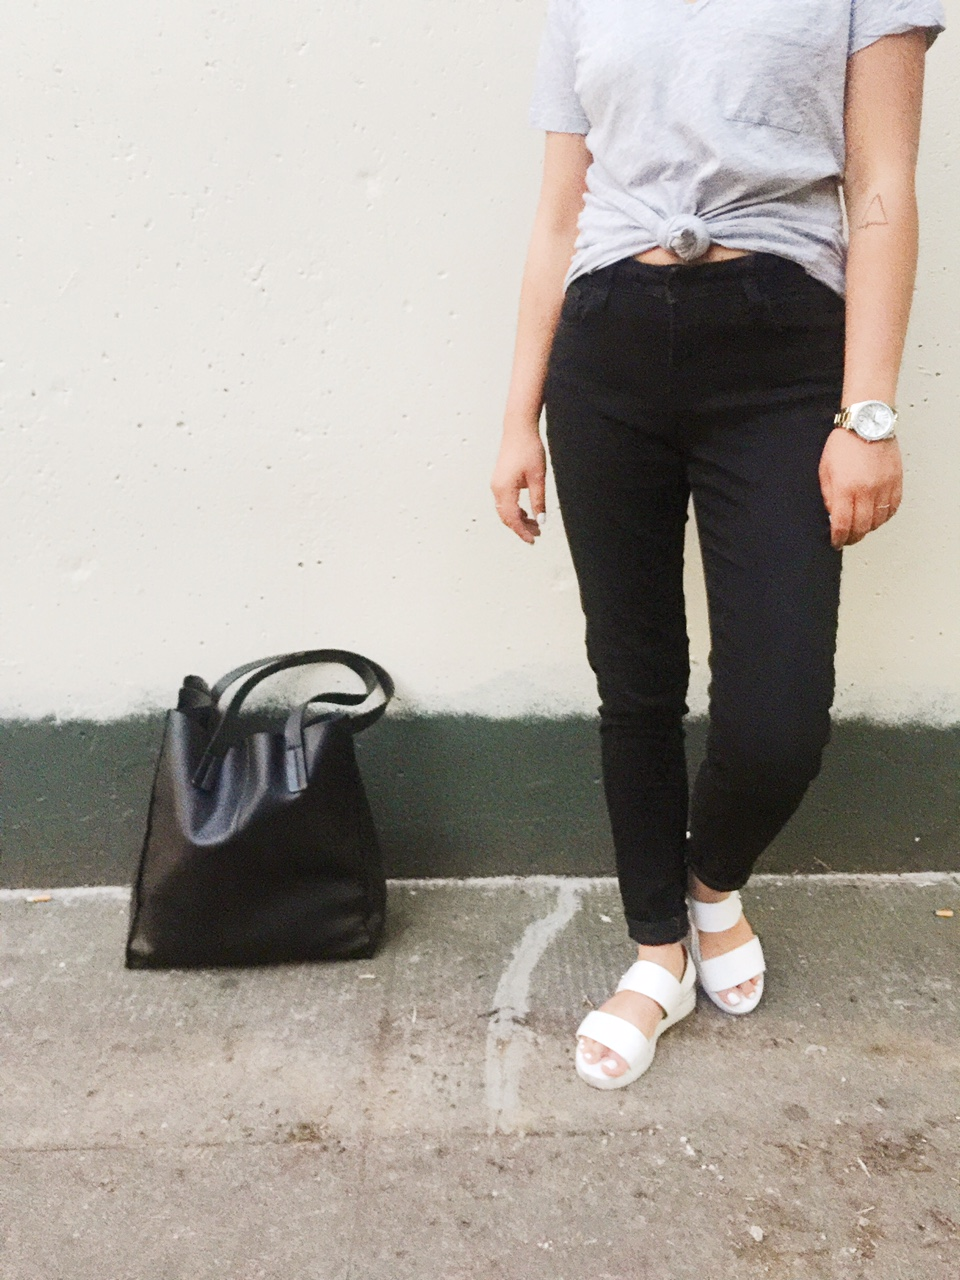 wonder wall wednesday, style blogger, fashion blogger, portland fashion blogger, affordable fashion, high waisted black jeans, gray v neck tee shirt, white sandals